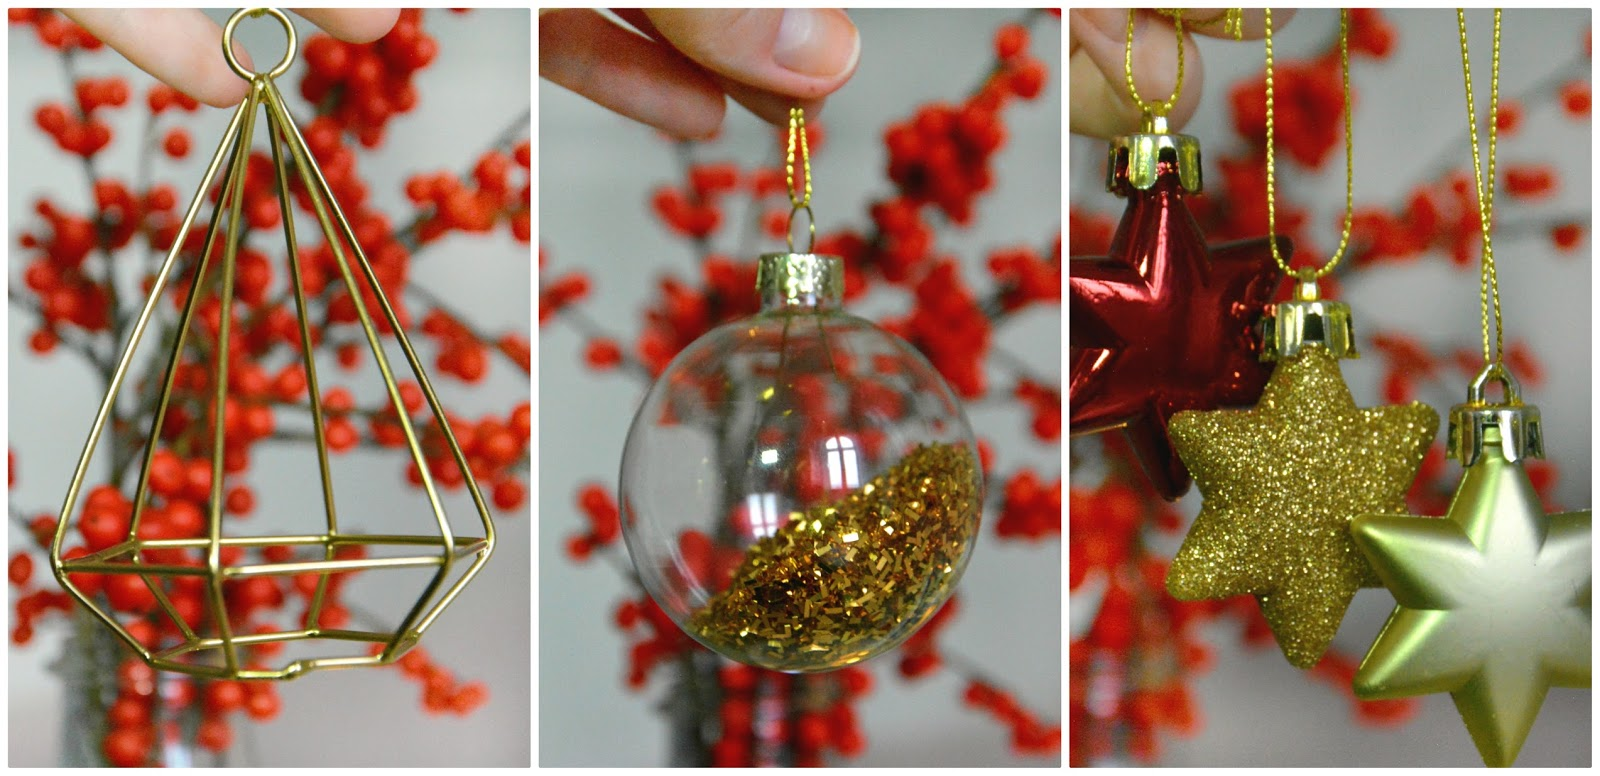 Baubles from H&M, Maisons Du Monde, & Primar